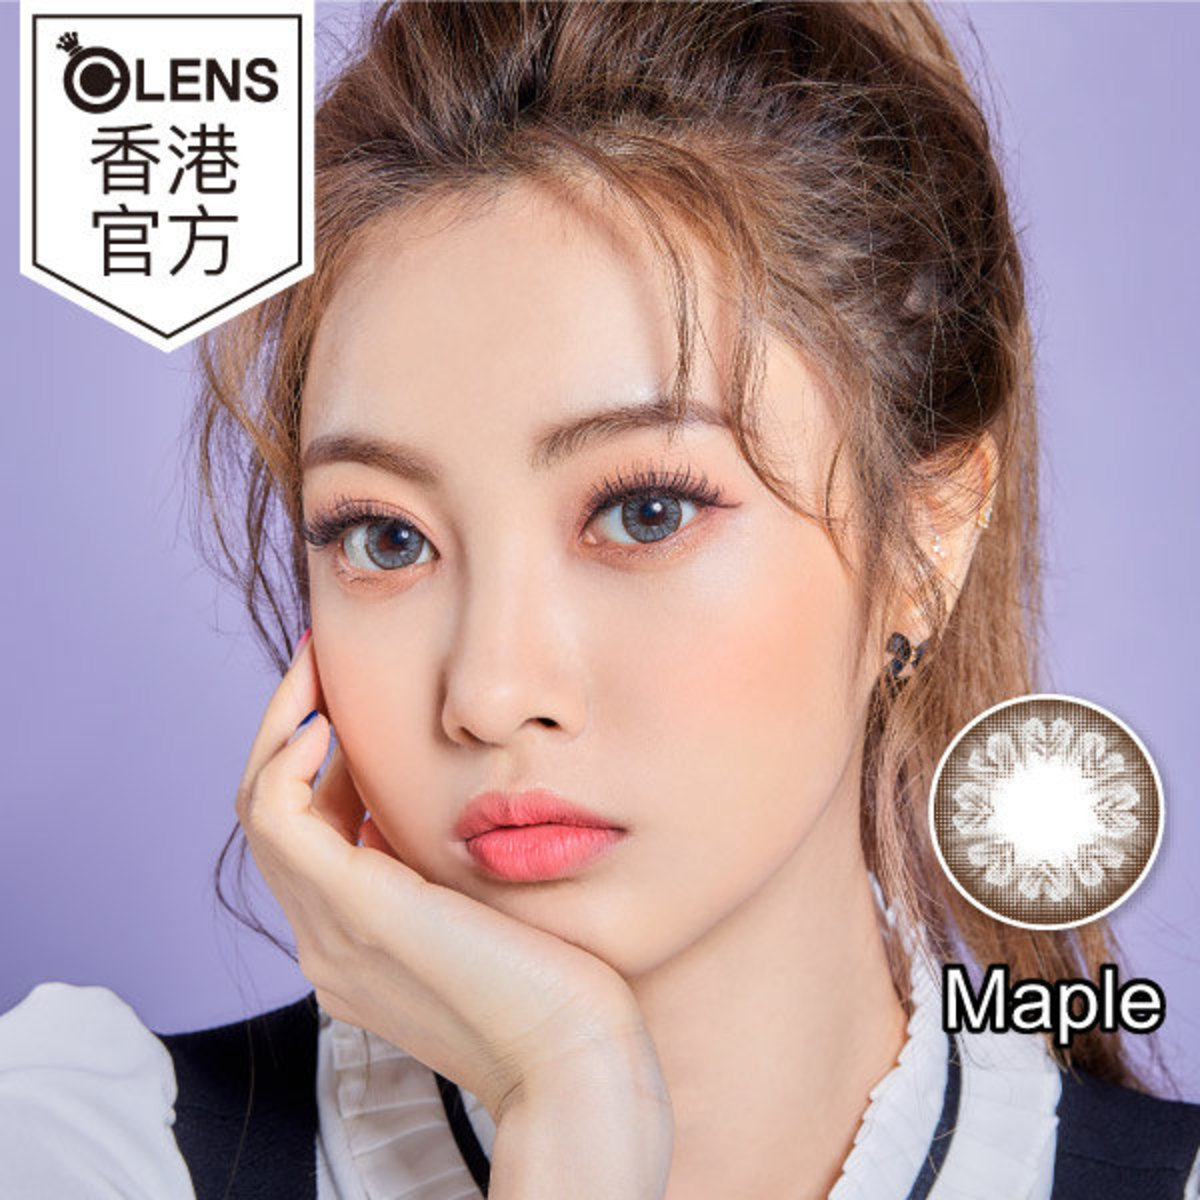 MAPLE GRAY 1-2 MONTHS COLORED CONTACT LENS (1PC)